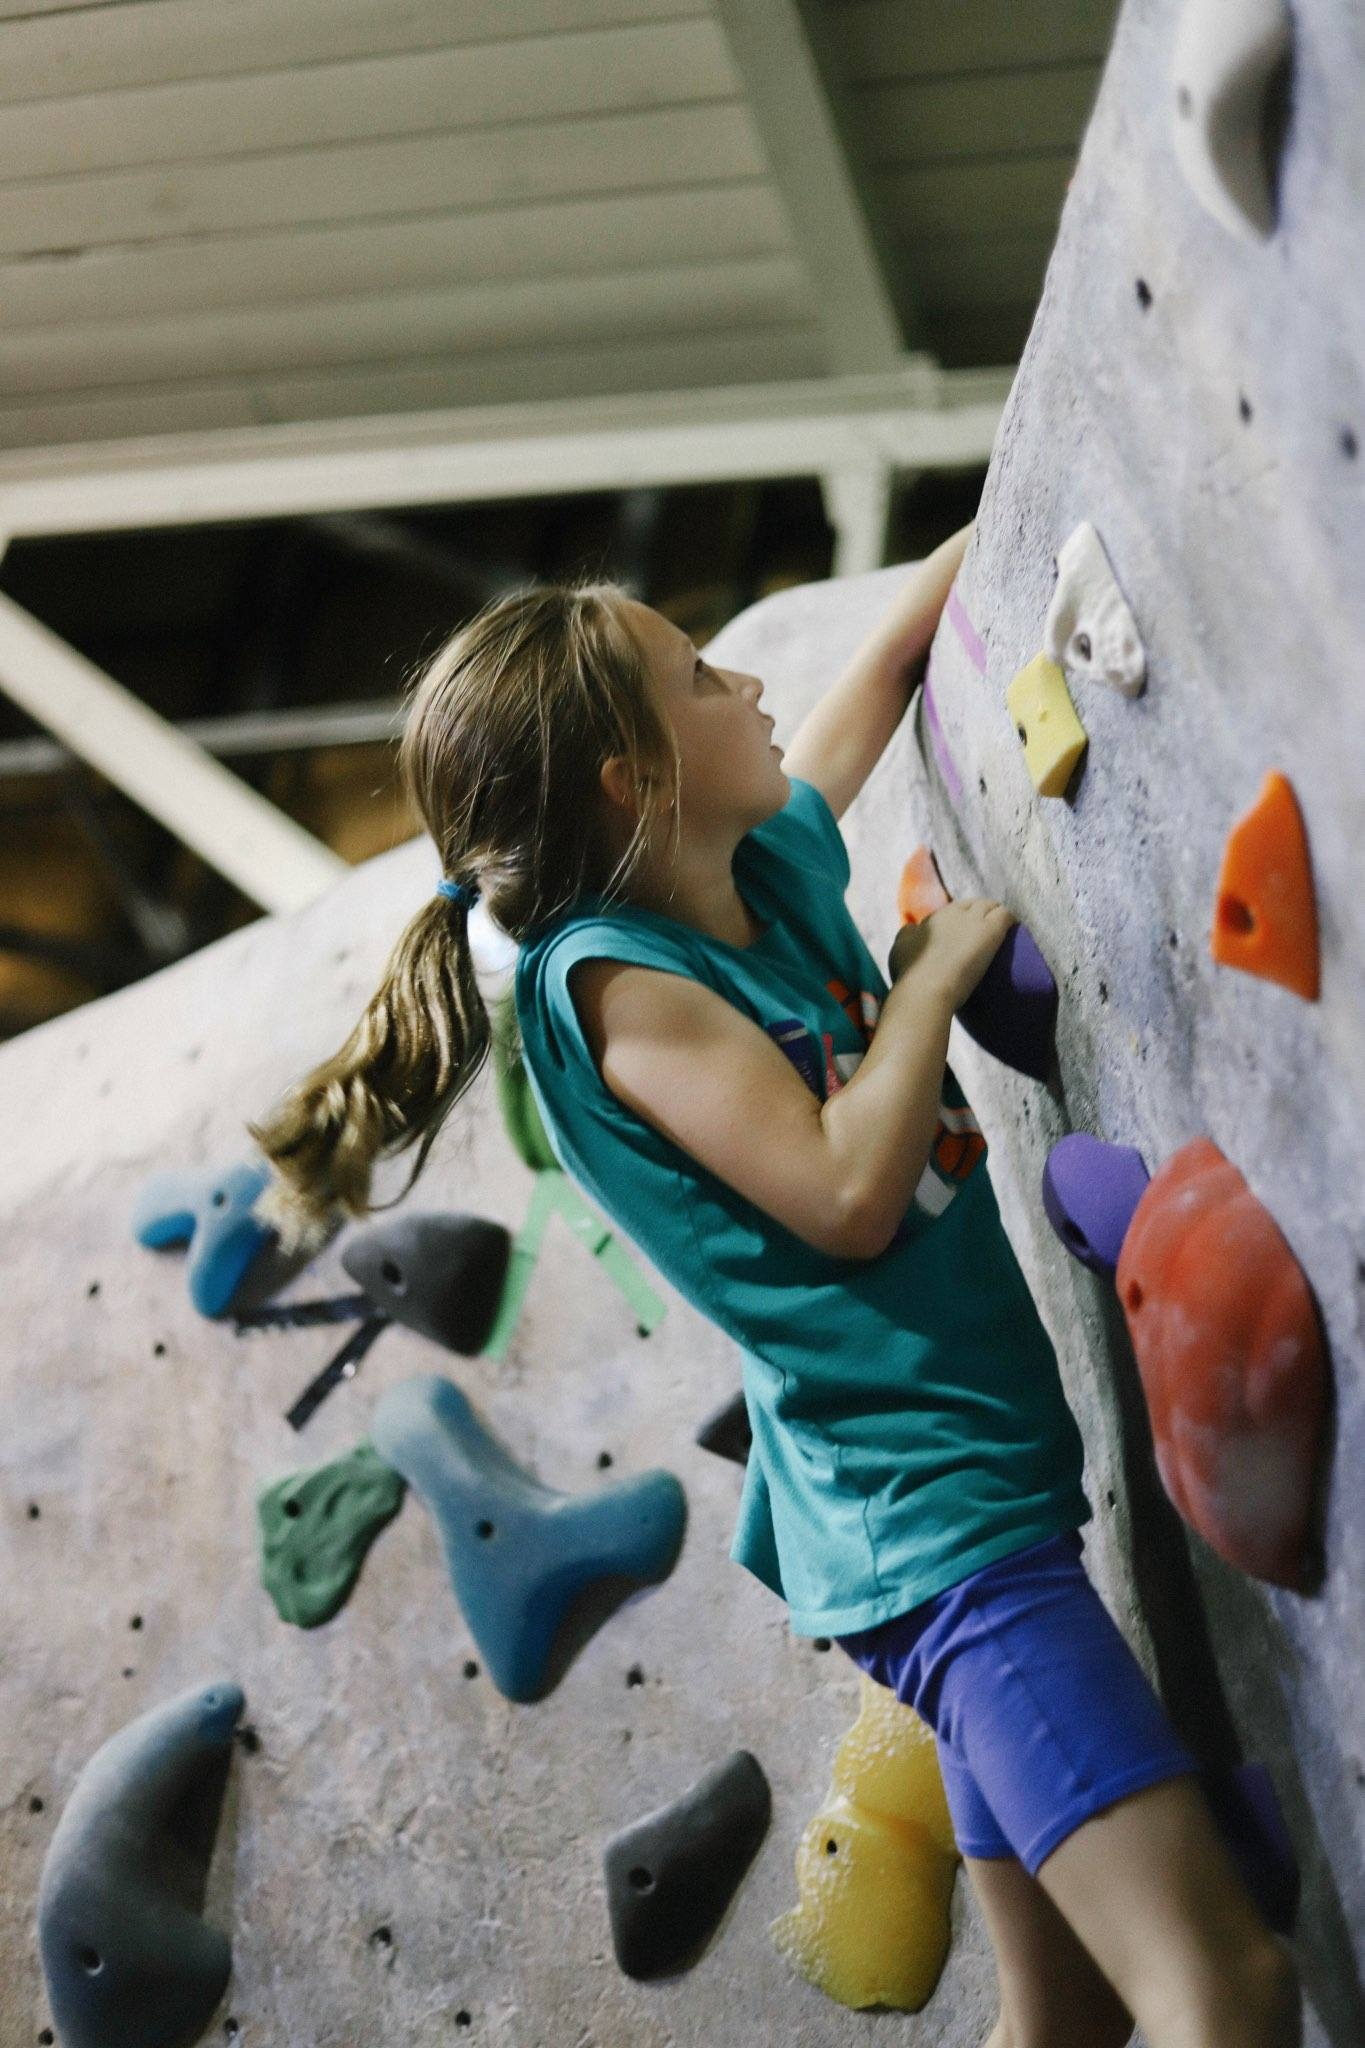 Monday Night is Student Night - 5-10PM-Elementary, Middle, High School - under 17 years old-College Students with Valid Student IDDay Pass: $10/climb+$5/Basic Skills if Needed